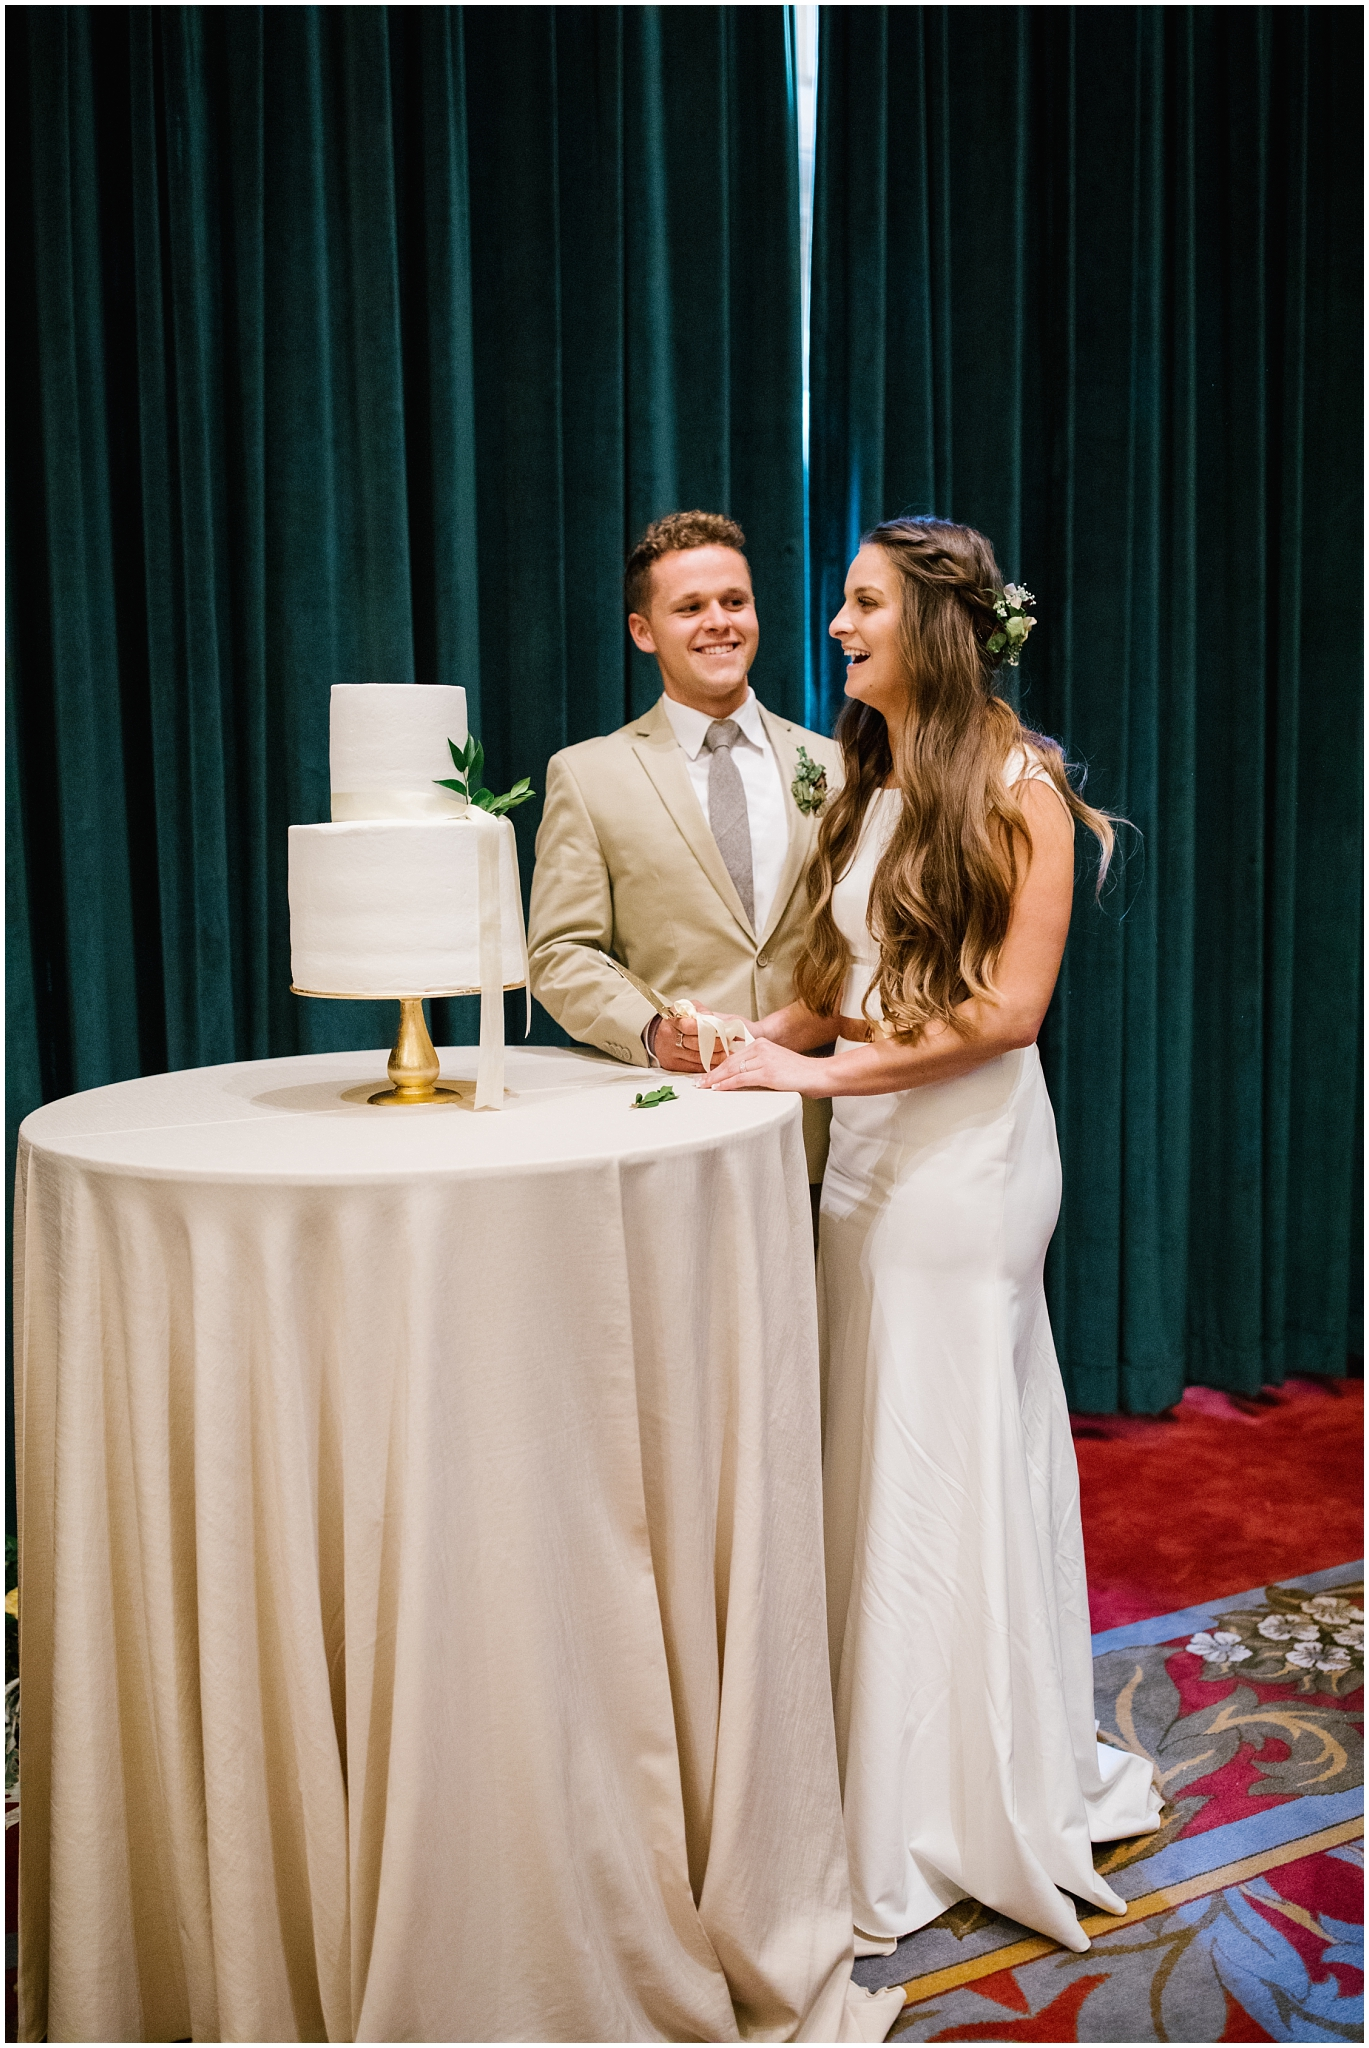 JC-Wedding-355_Lizzie-B-Imagery-Utah-Wedding-Photographer-Park-City-Salt-Lake-City-Temple-Joseph-Smith-Memorial-Building-Empire-Room.jpg